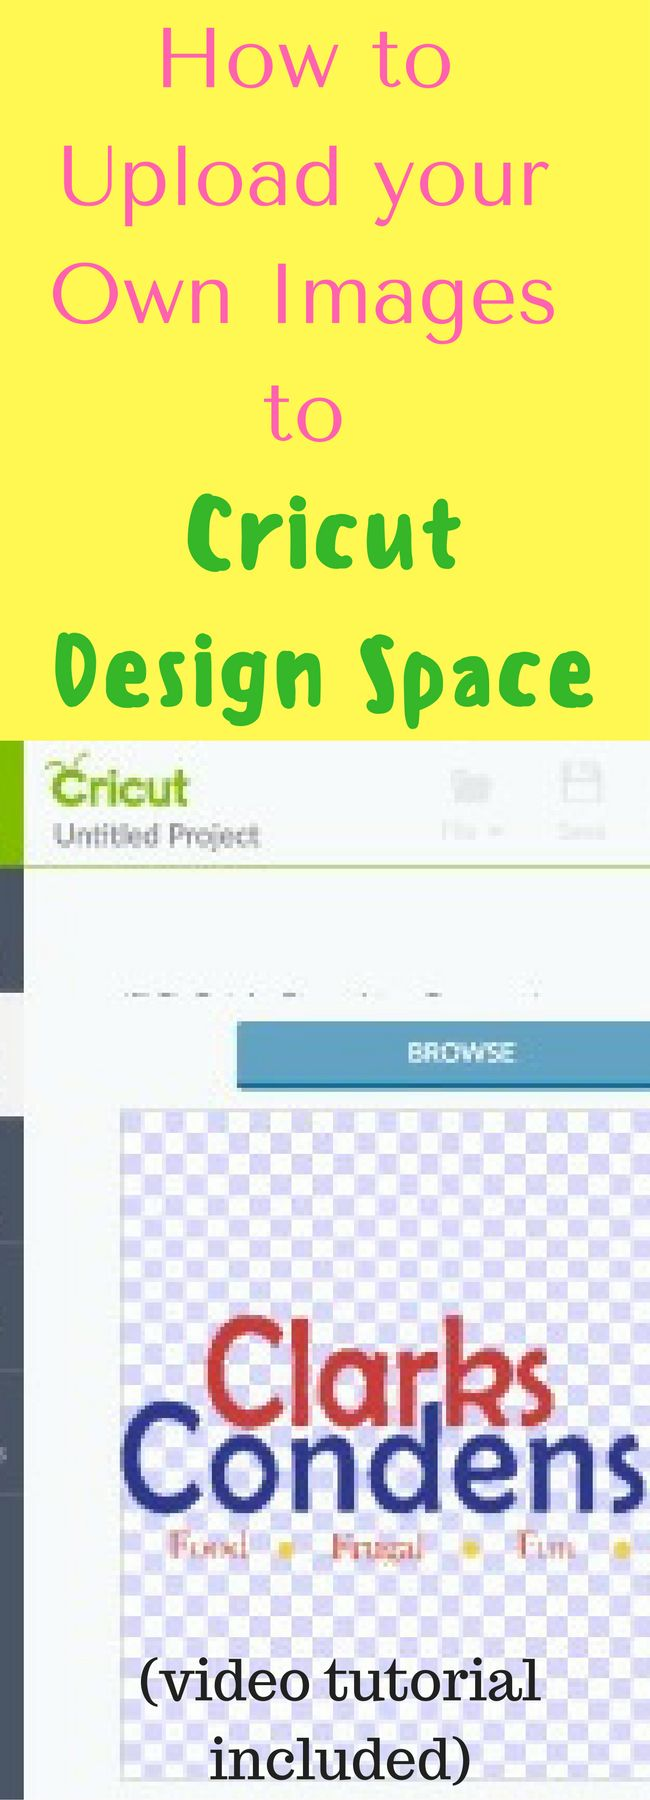 How To Upload Images To Cricut Design Space